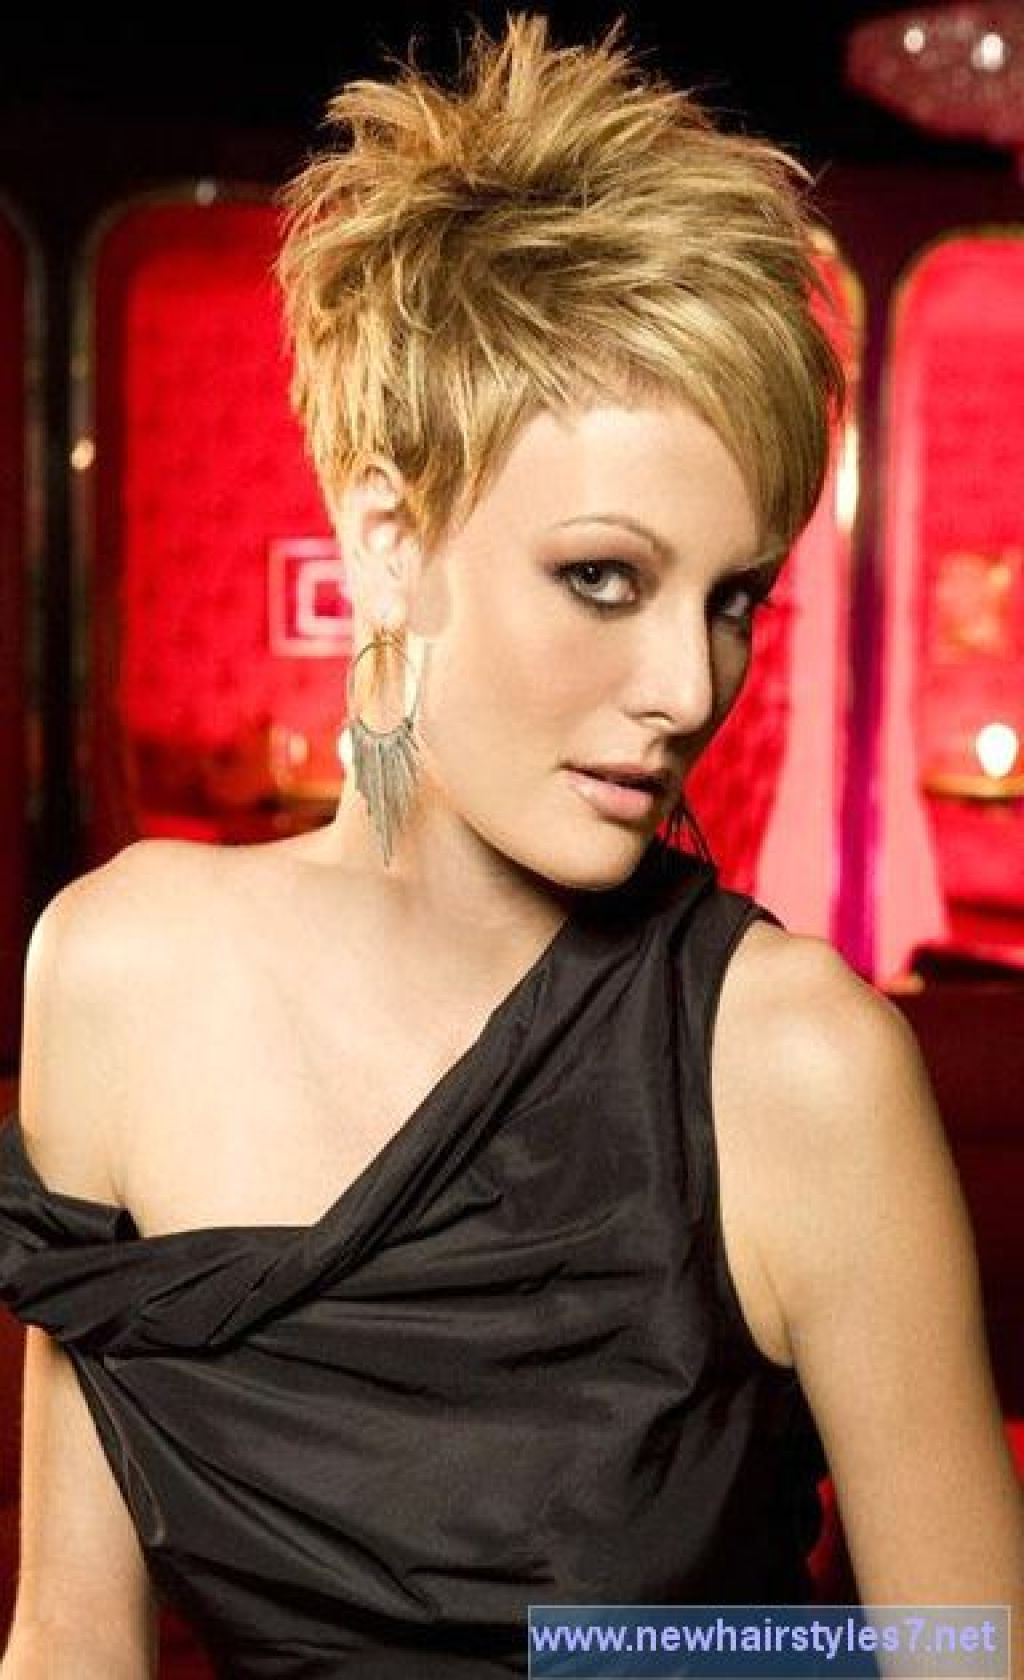 Short Pixie Hairstyles 2015 | Pixie Hairstyles For Formal Event In Short Hairstyles For Formal Event (View 8 of 25)